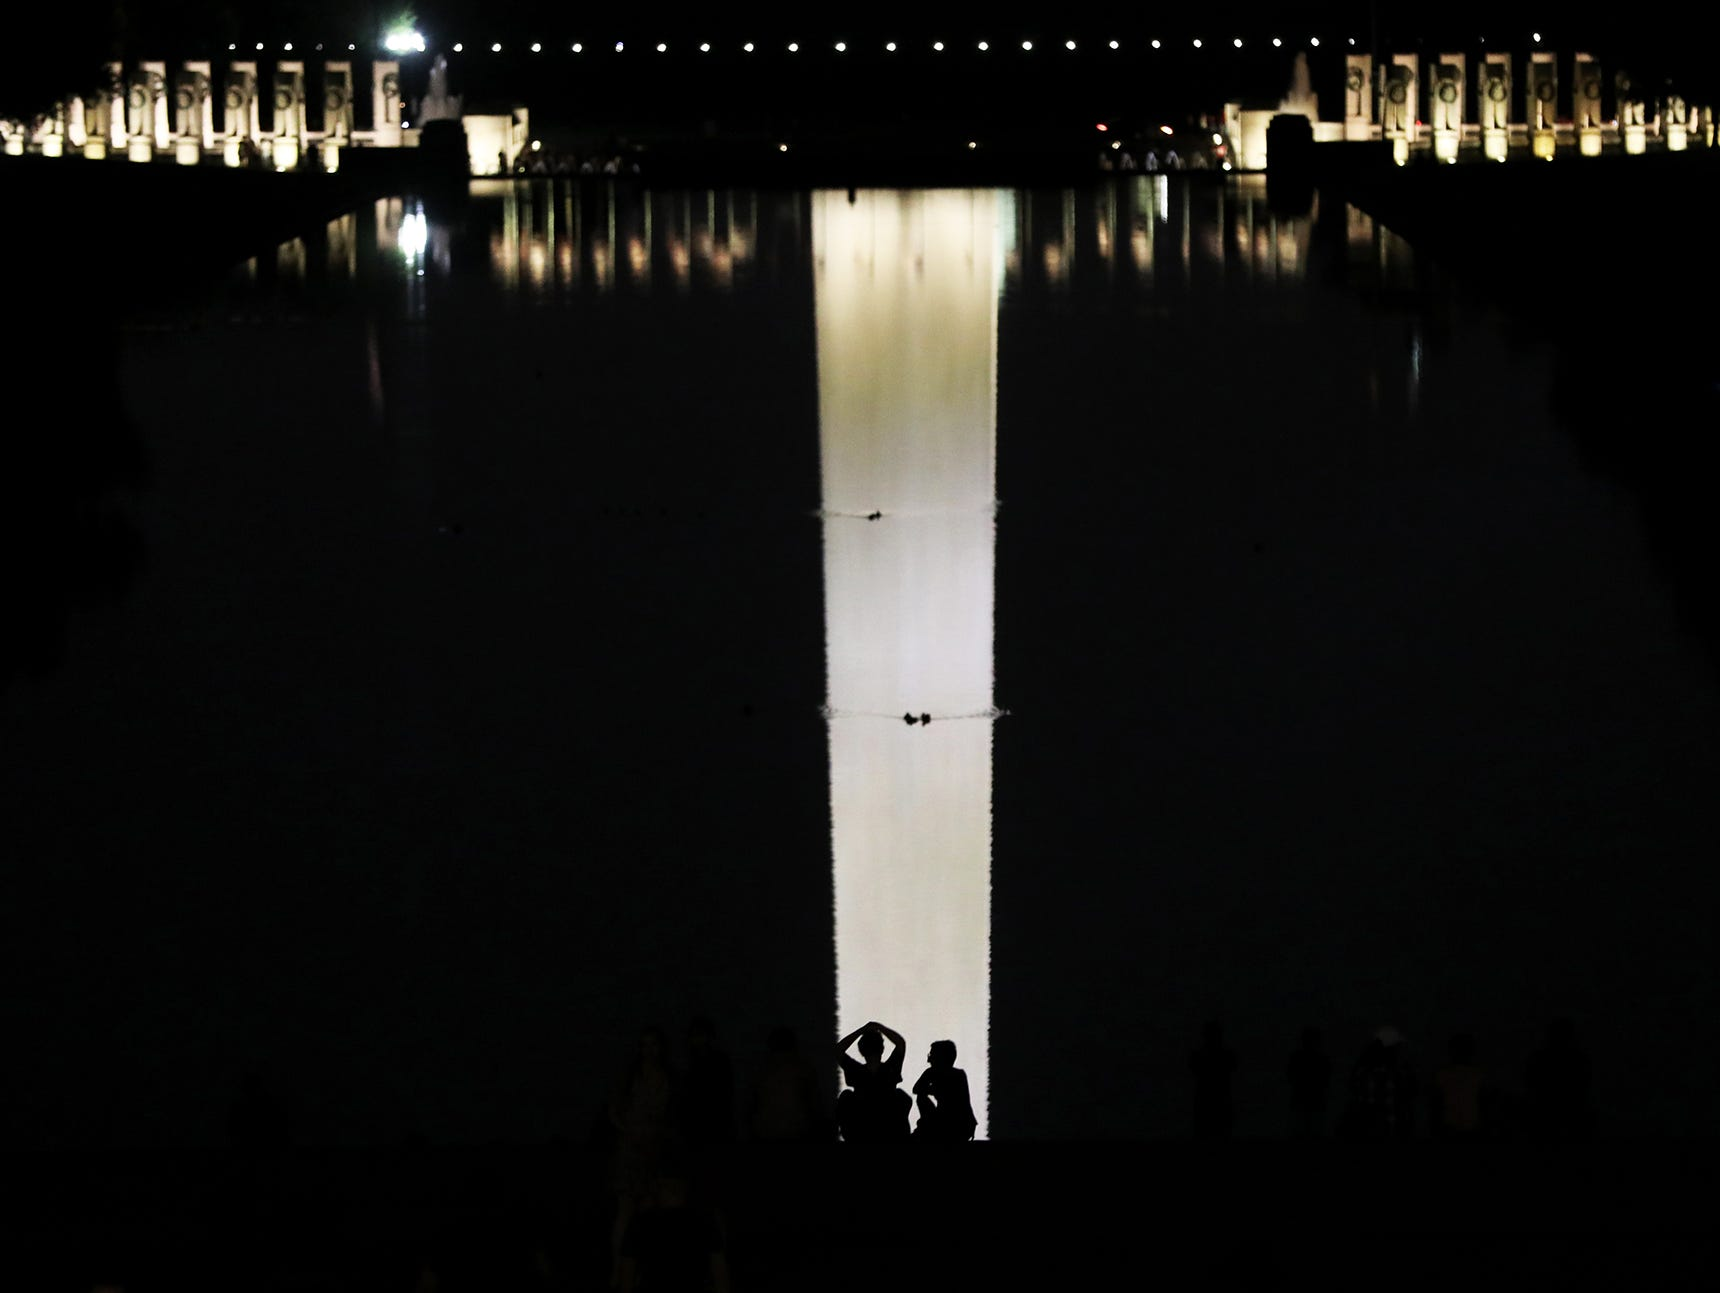 A couple is shown on the edge of the Reflecting Pool in Washington D.C. as they are silhouetted against the Washington Monument's reflection. Friday June 15, 2018